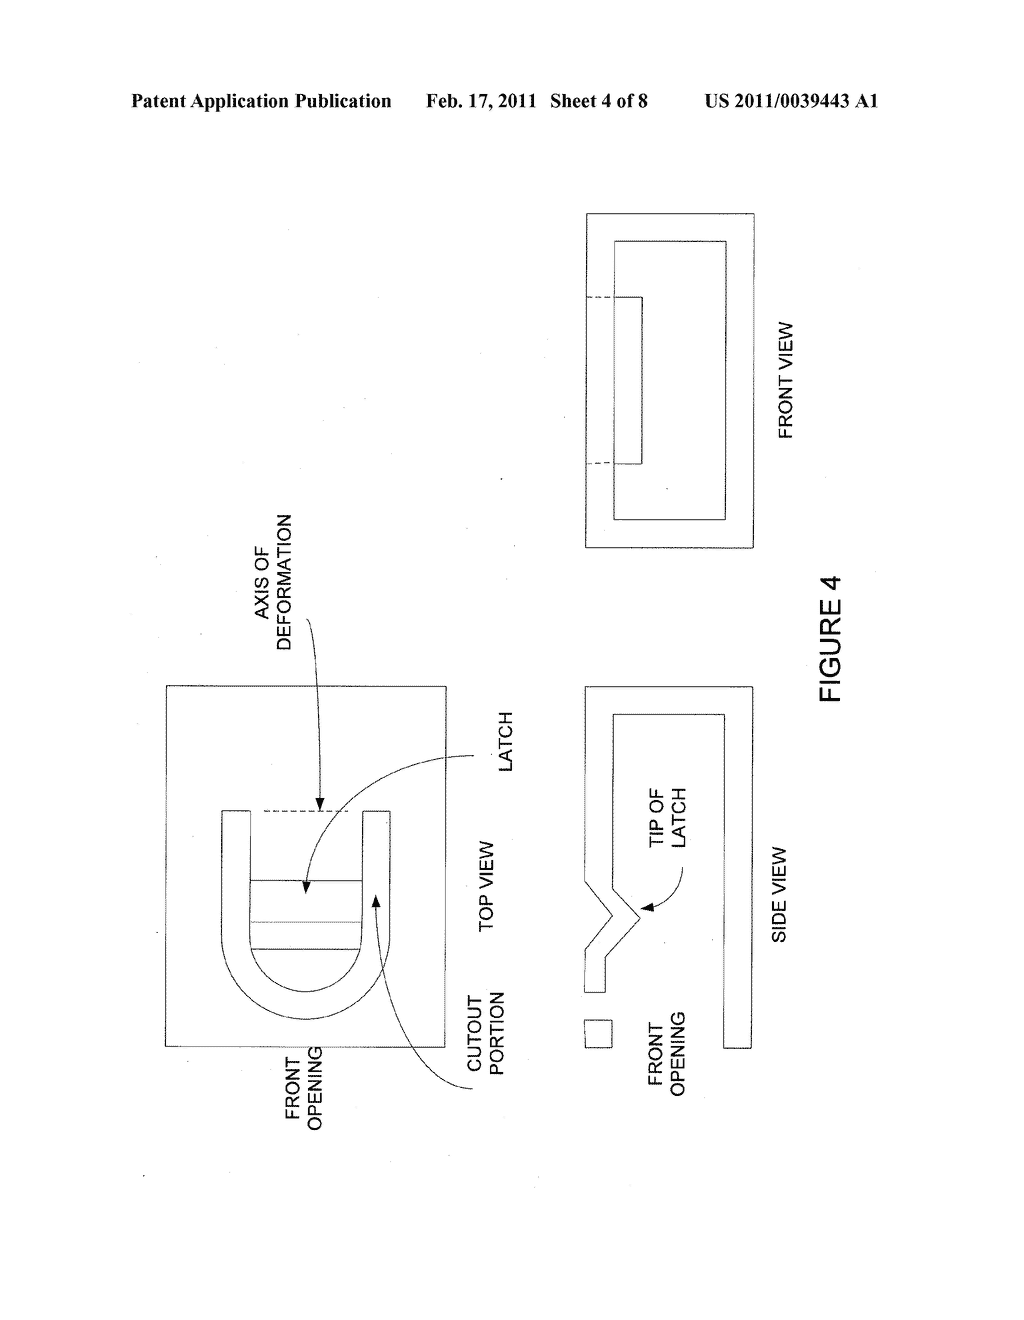 MINI DISPLAYPORT - diagram, schematic, and image 05